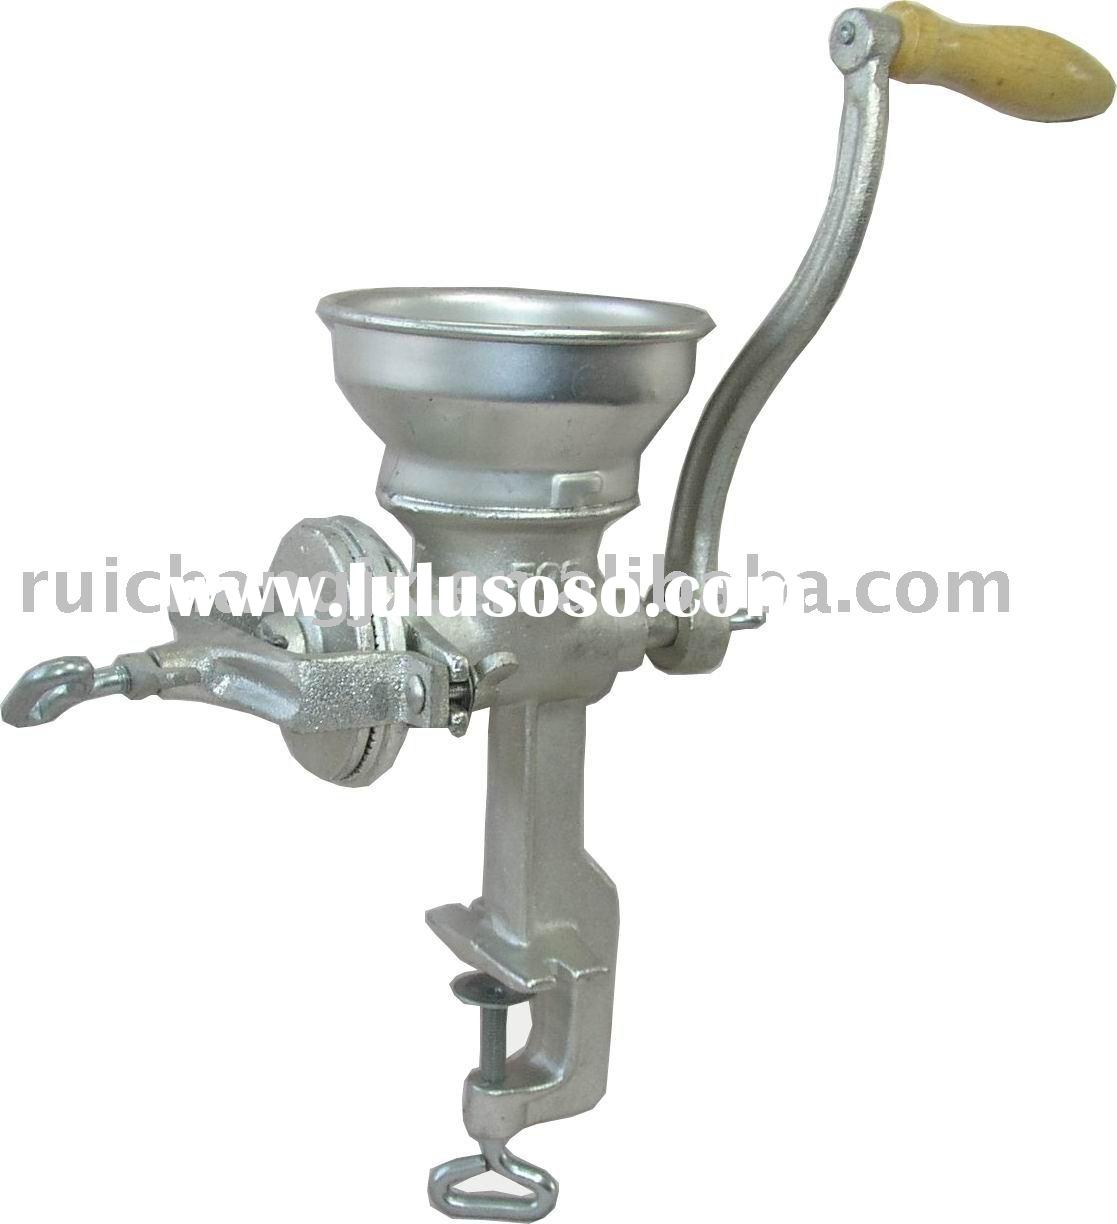 manual grinder ,cast iron grinder ,hand grinder,maize grinder